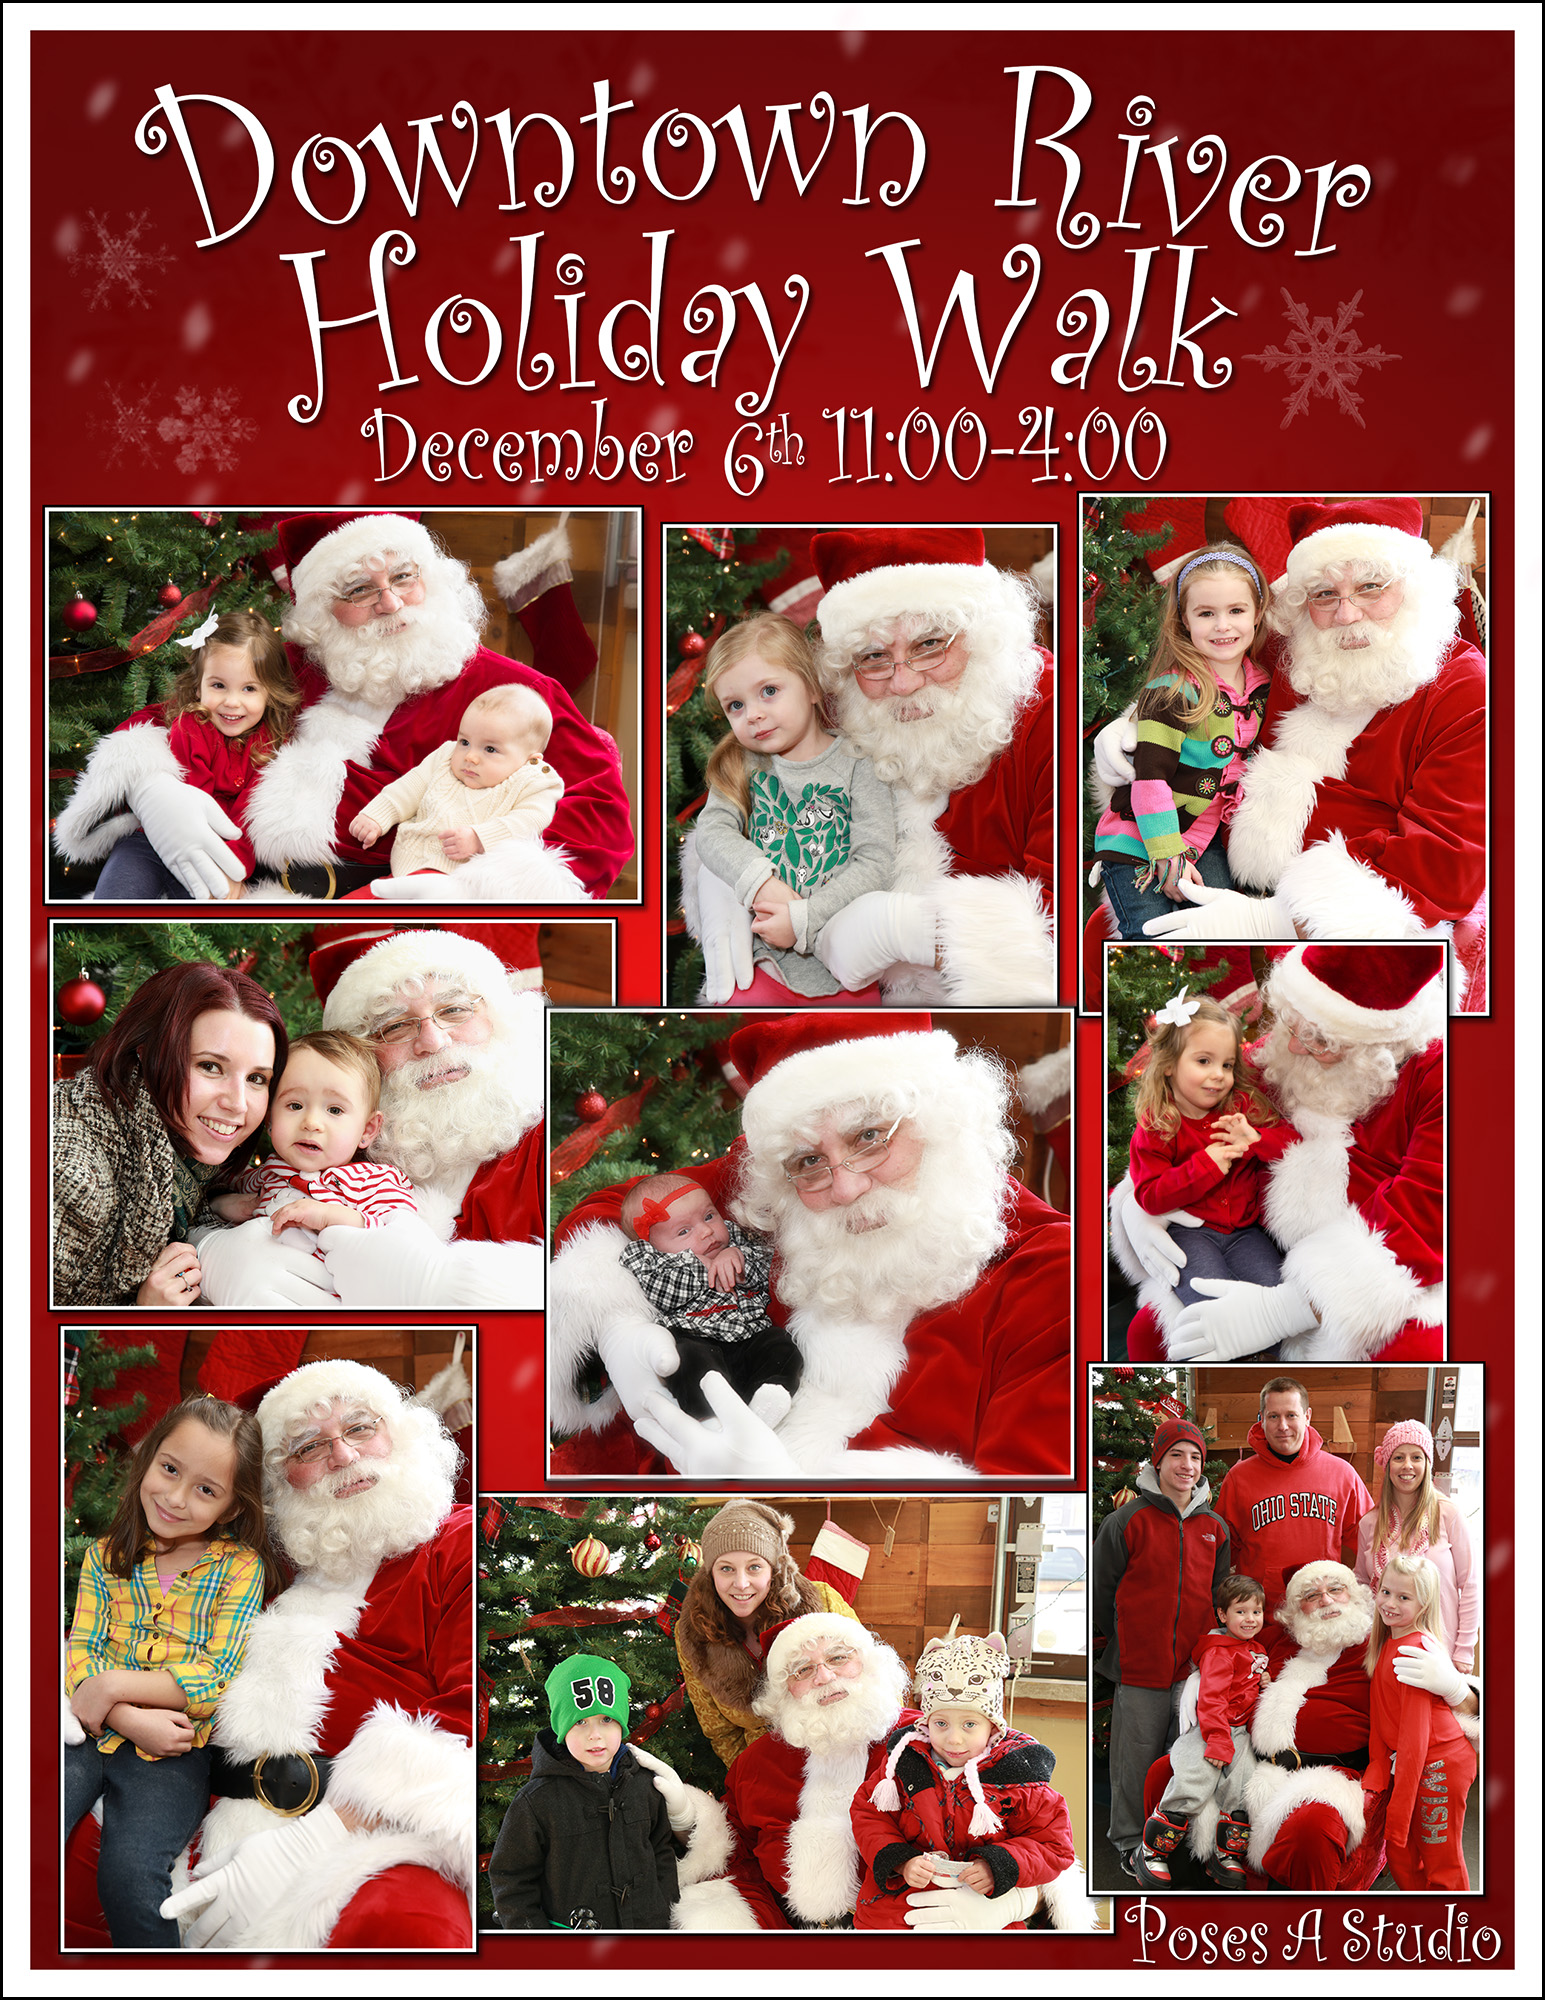 Get your photo with Santa at the 6th Annual Downtown River Holiday Walk